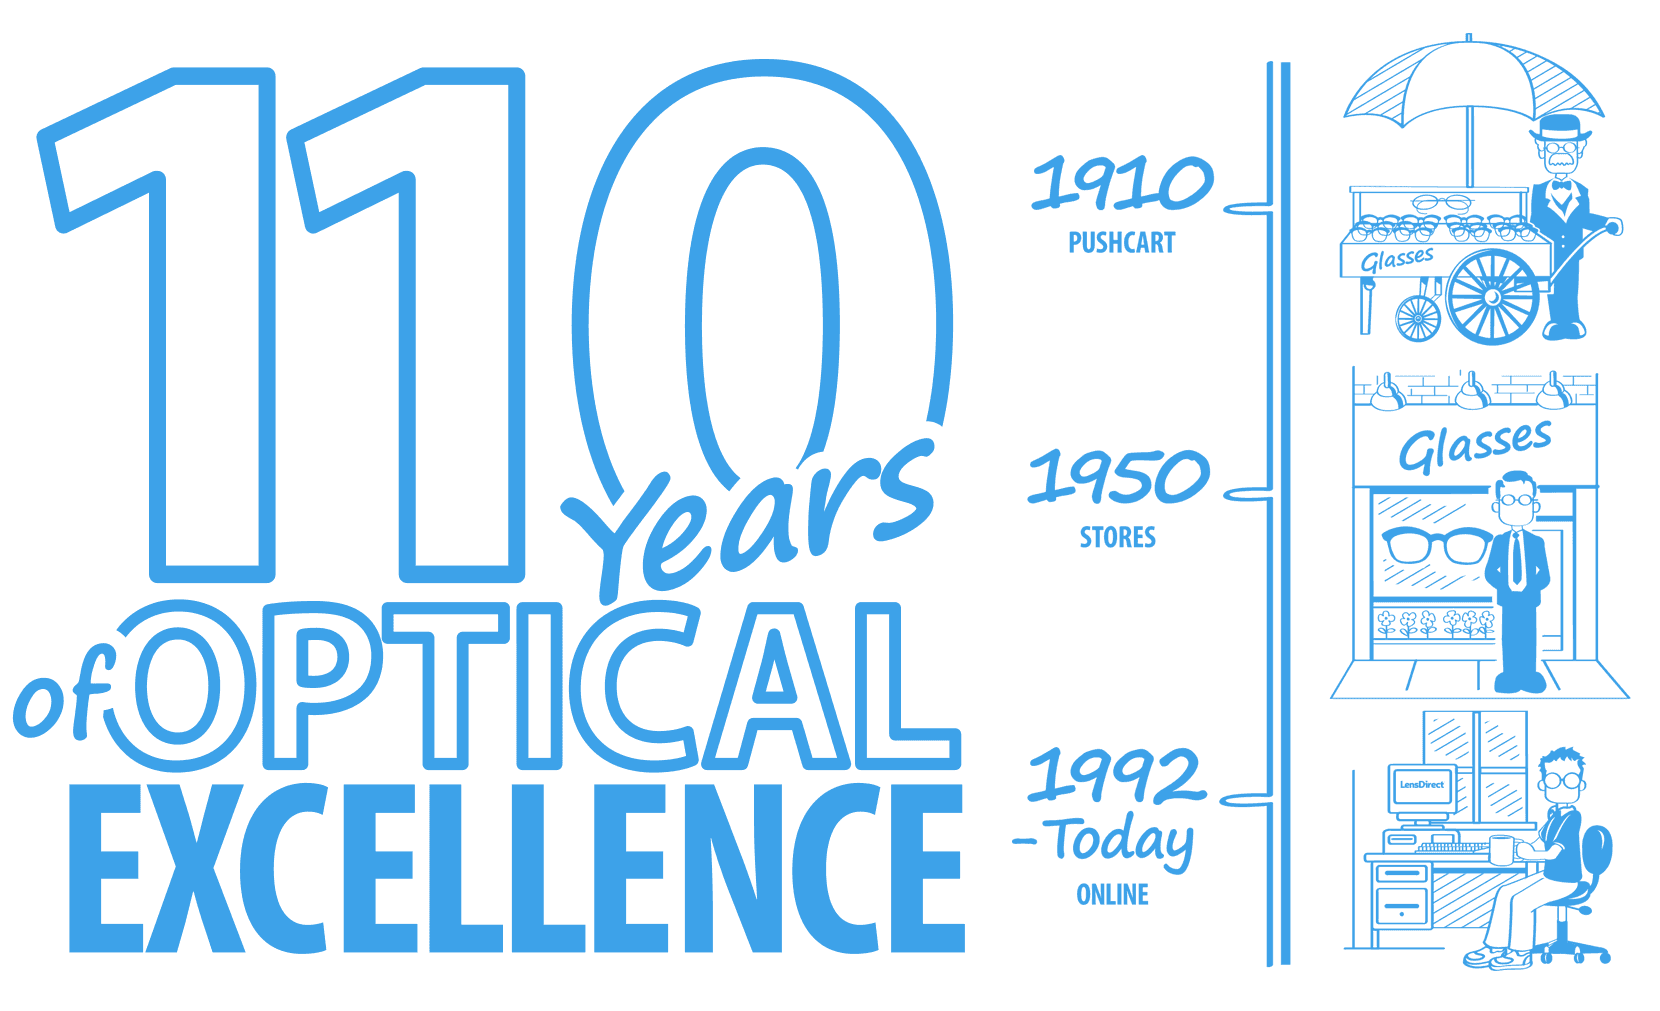 110 years of optical excellence